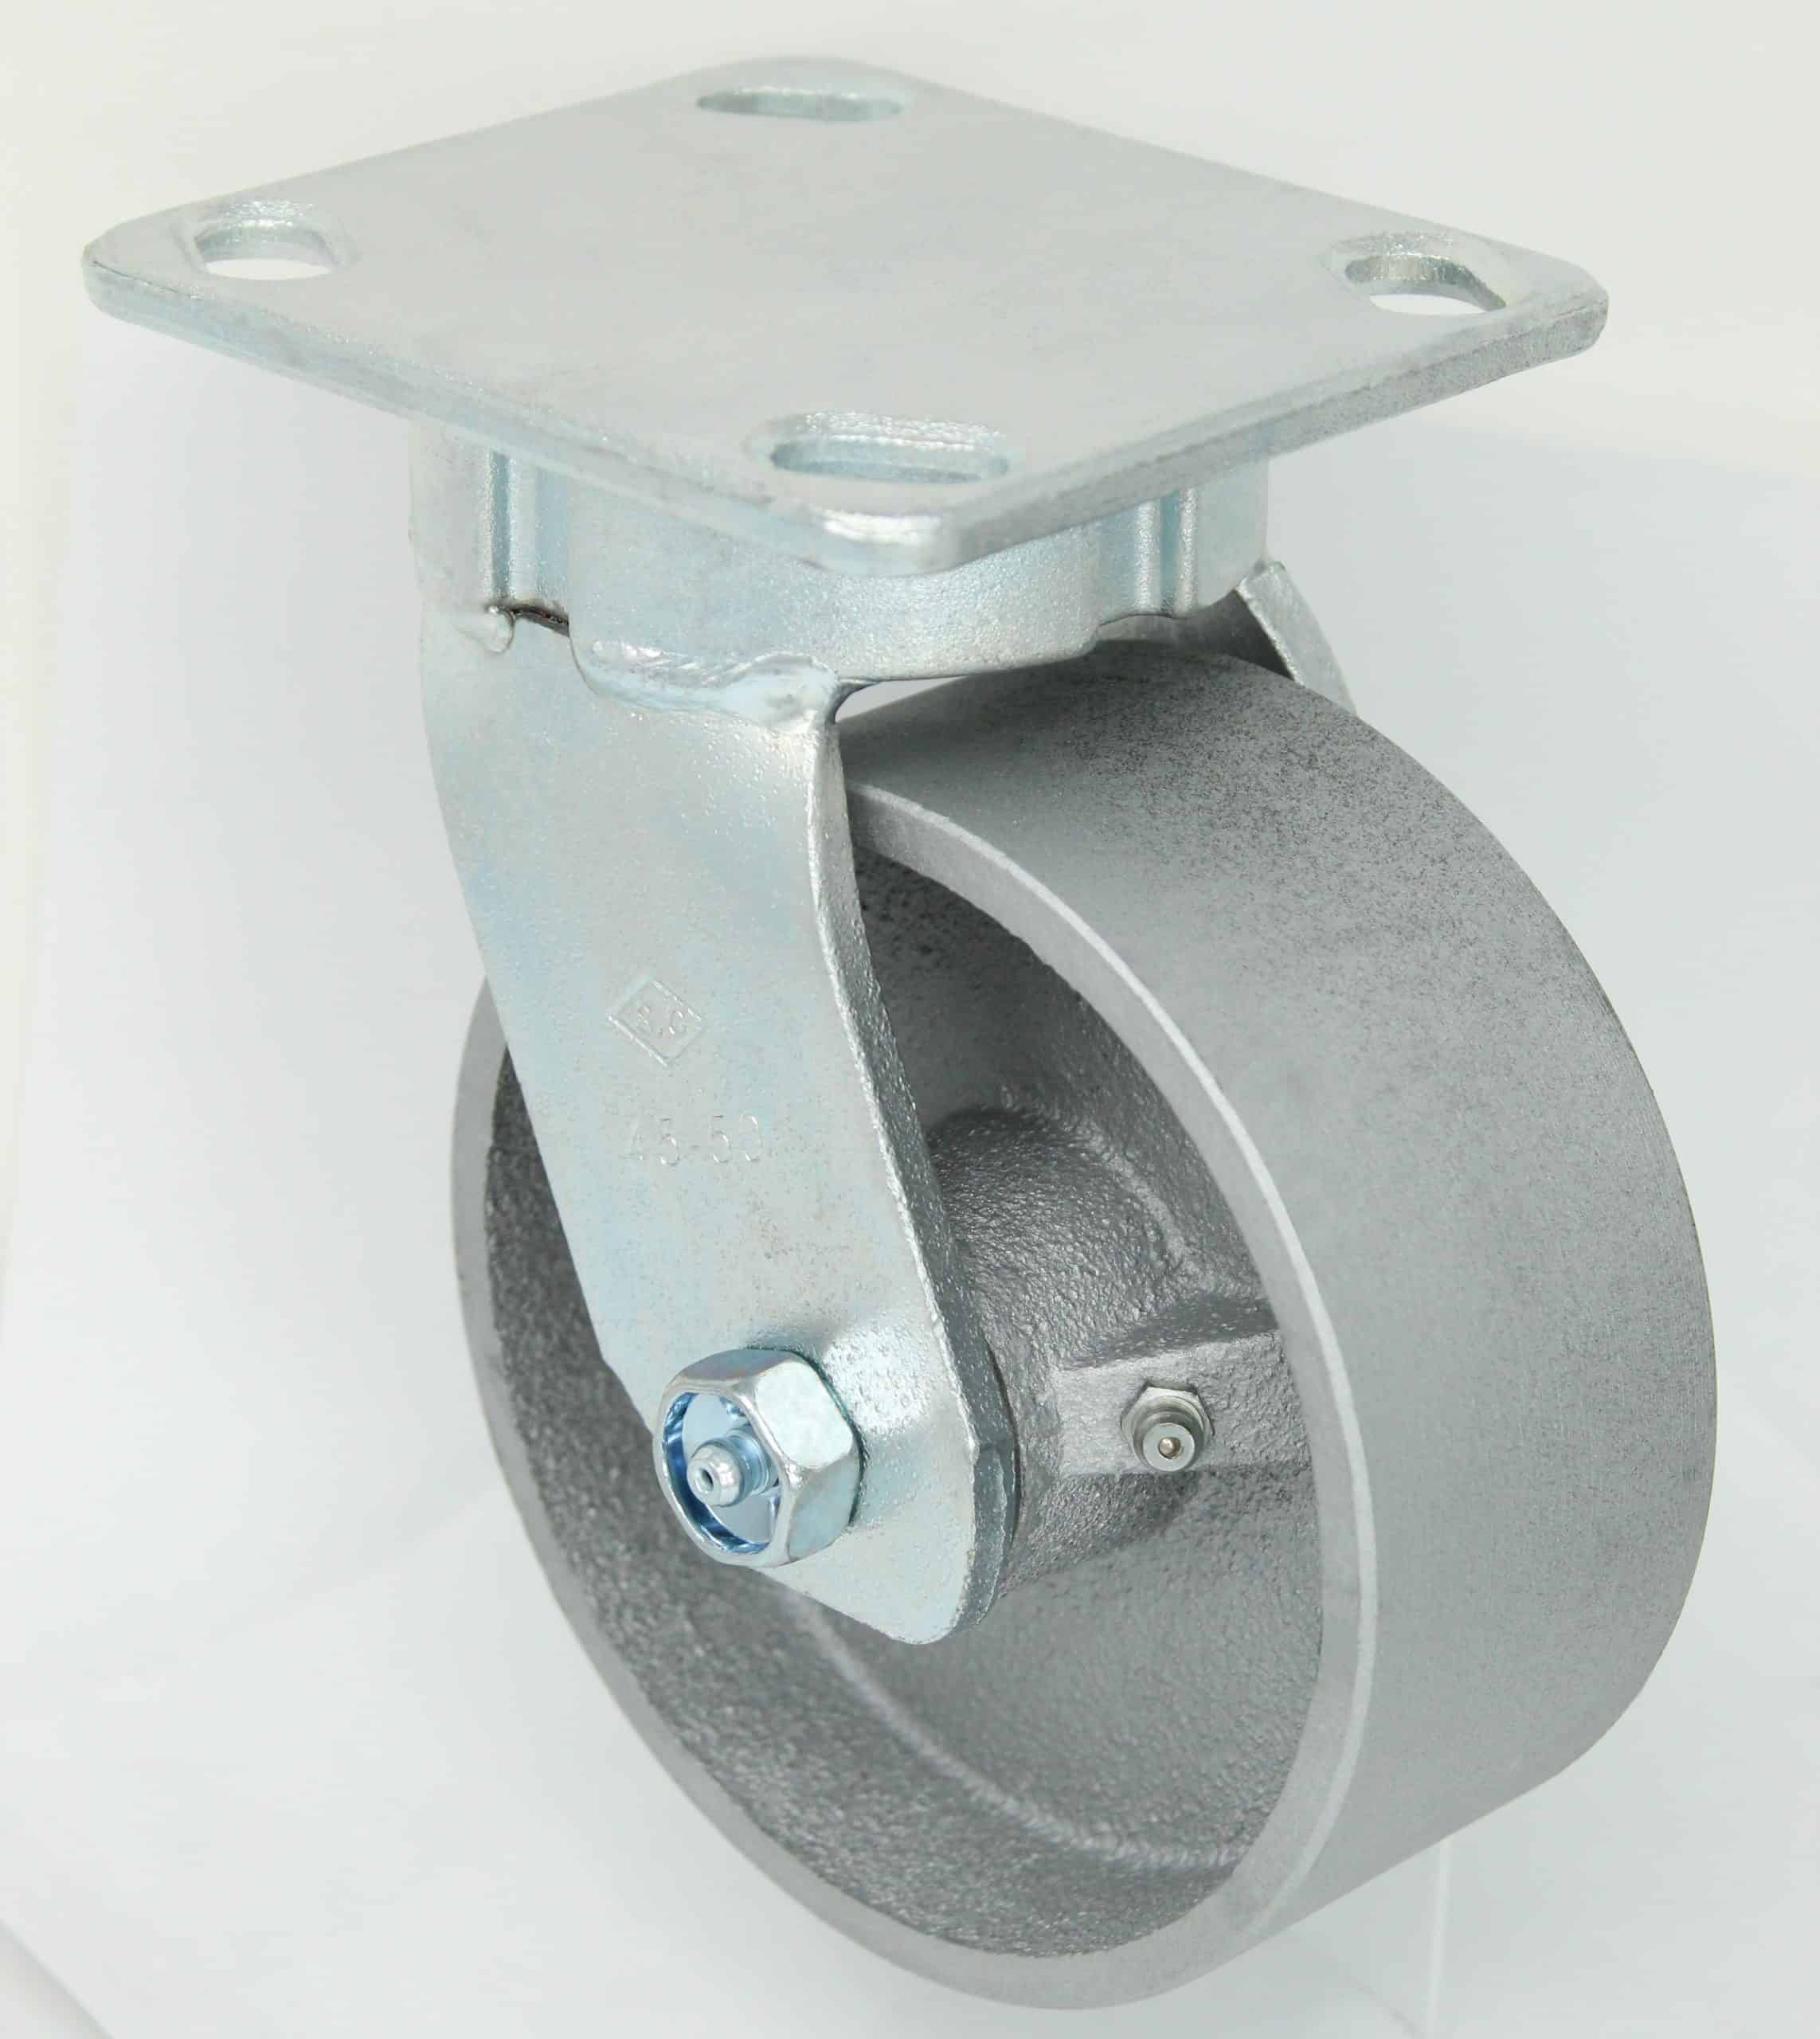 Swivel Kingpinless Steel Caster 4 x 4-1/2 Top Plate